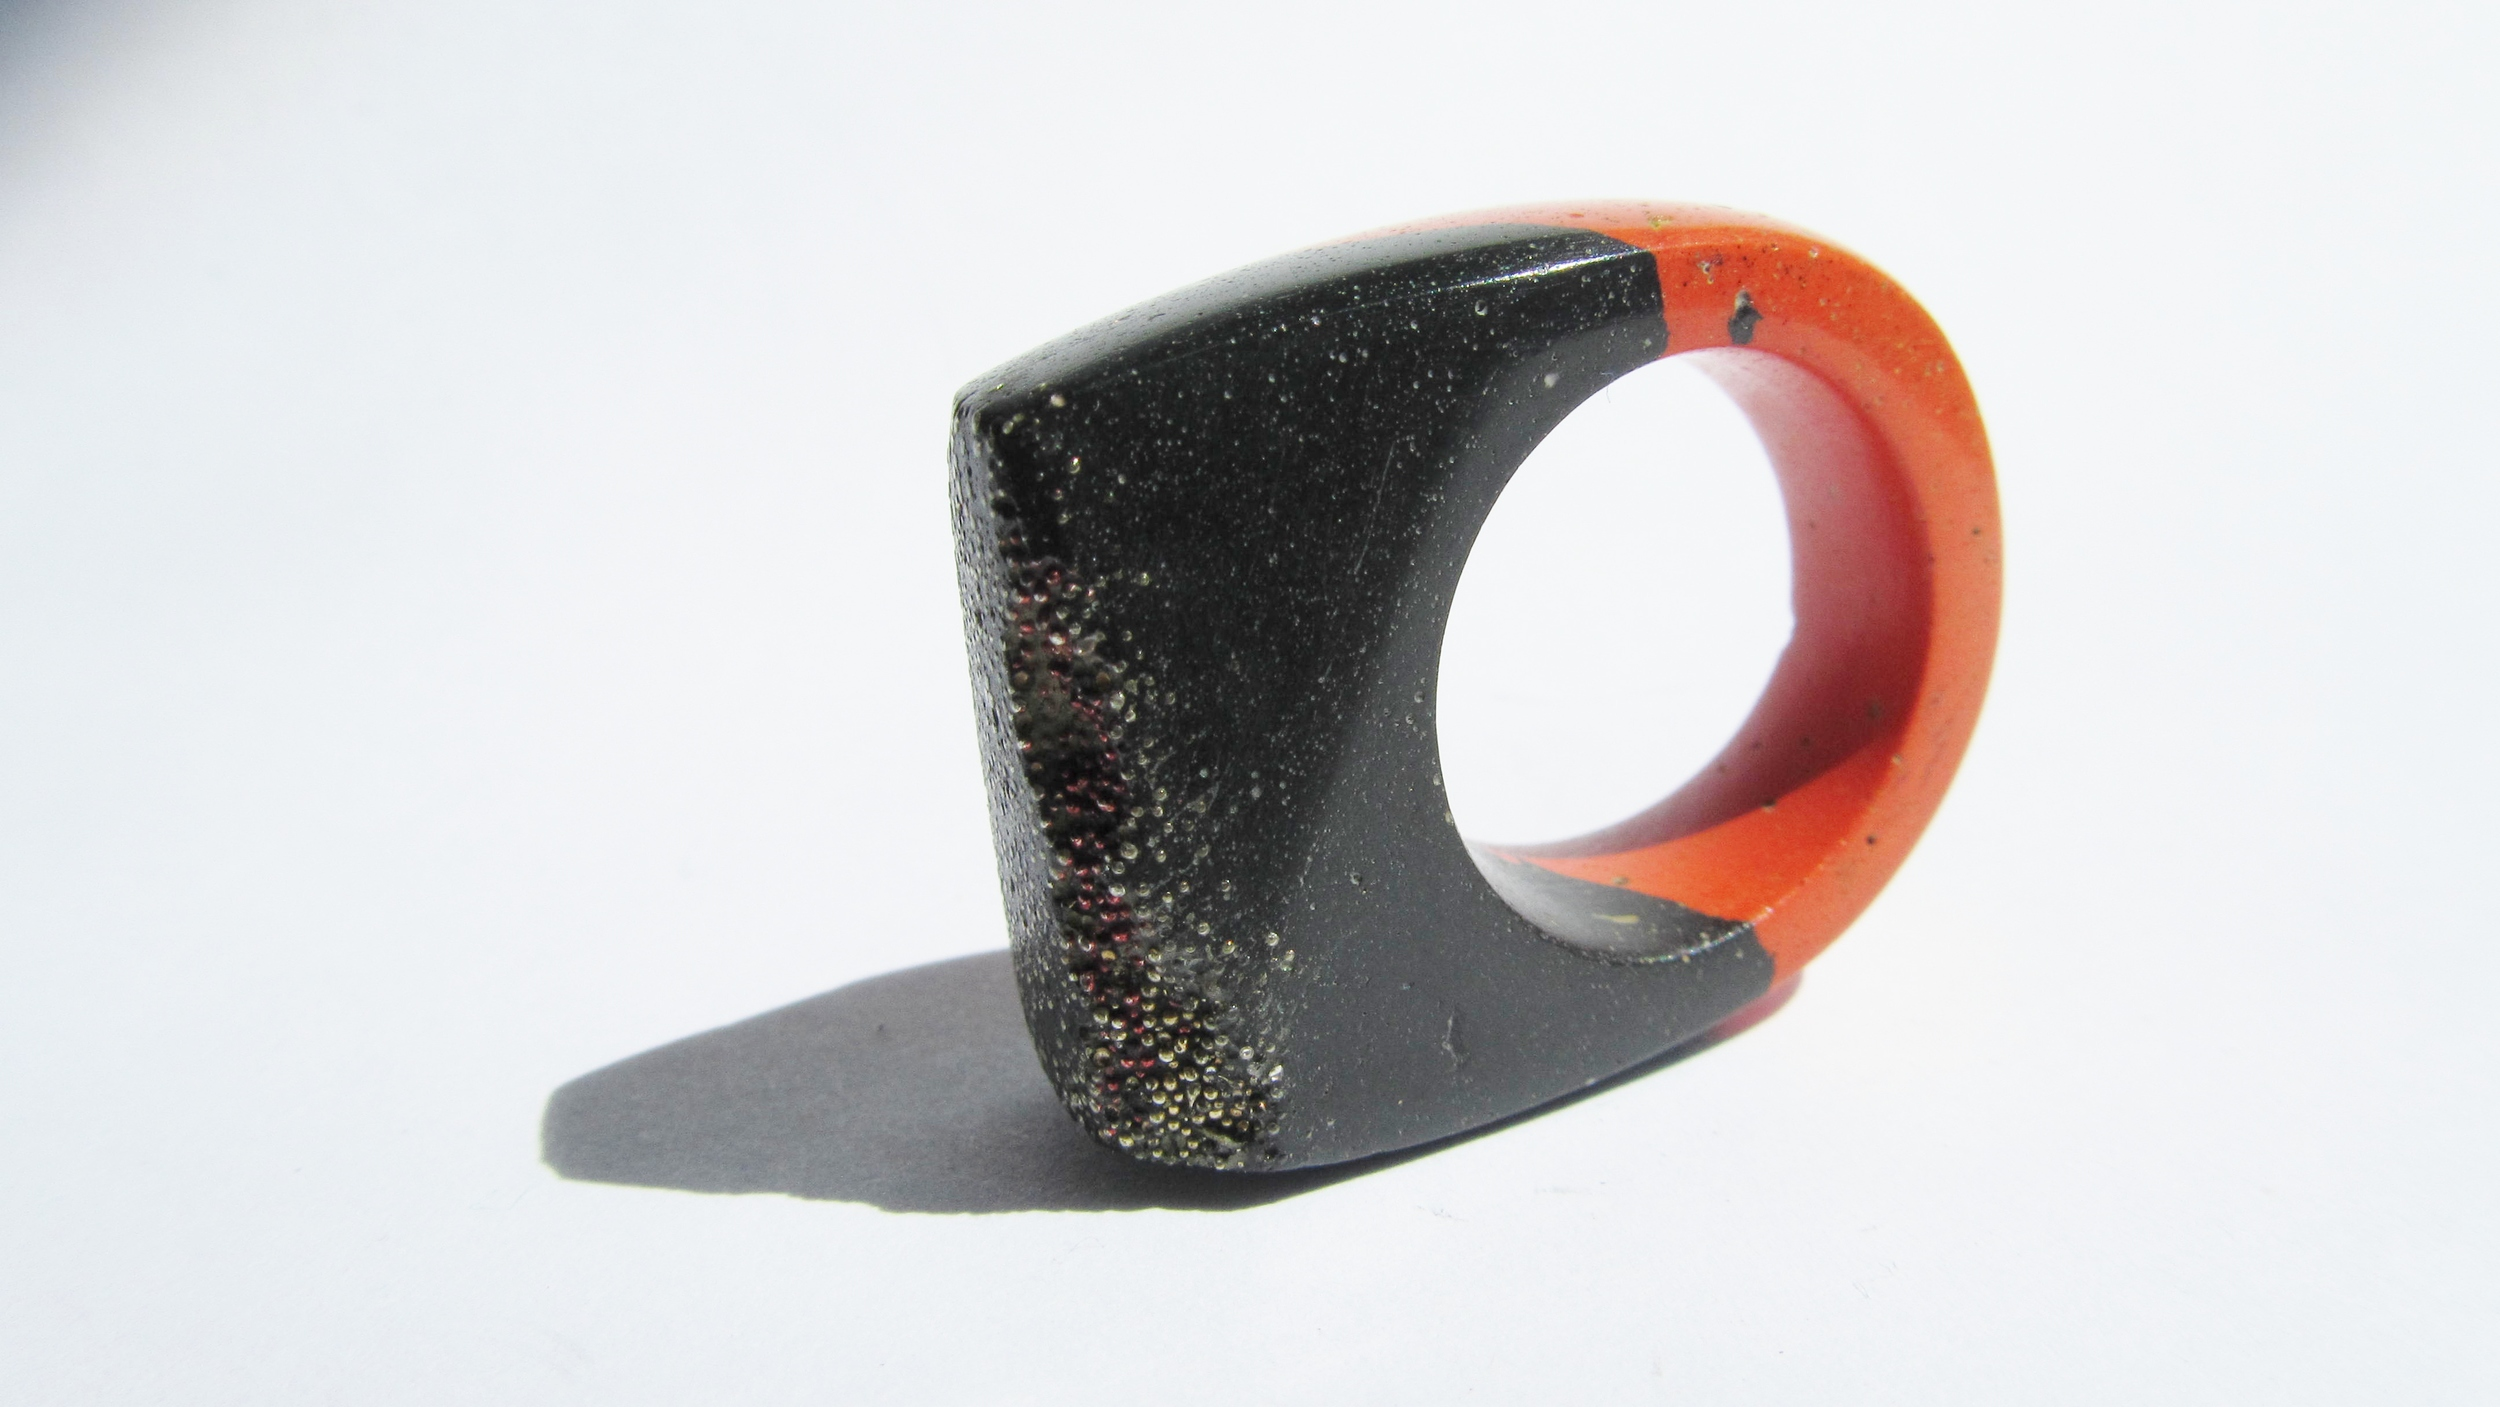 jade mellor hewn ring black red caviar gold caviar P 5.JPG